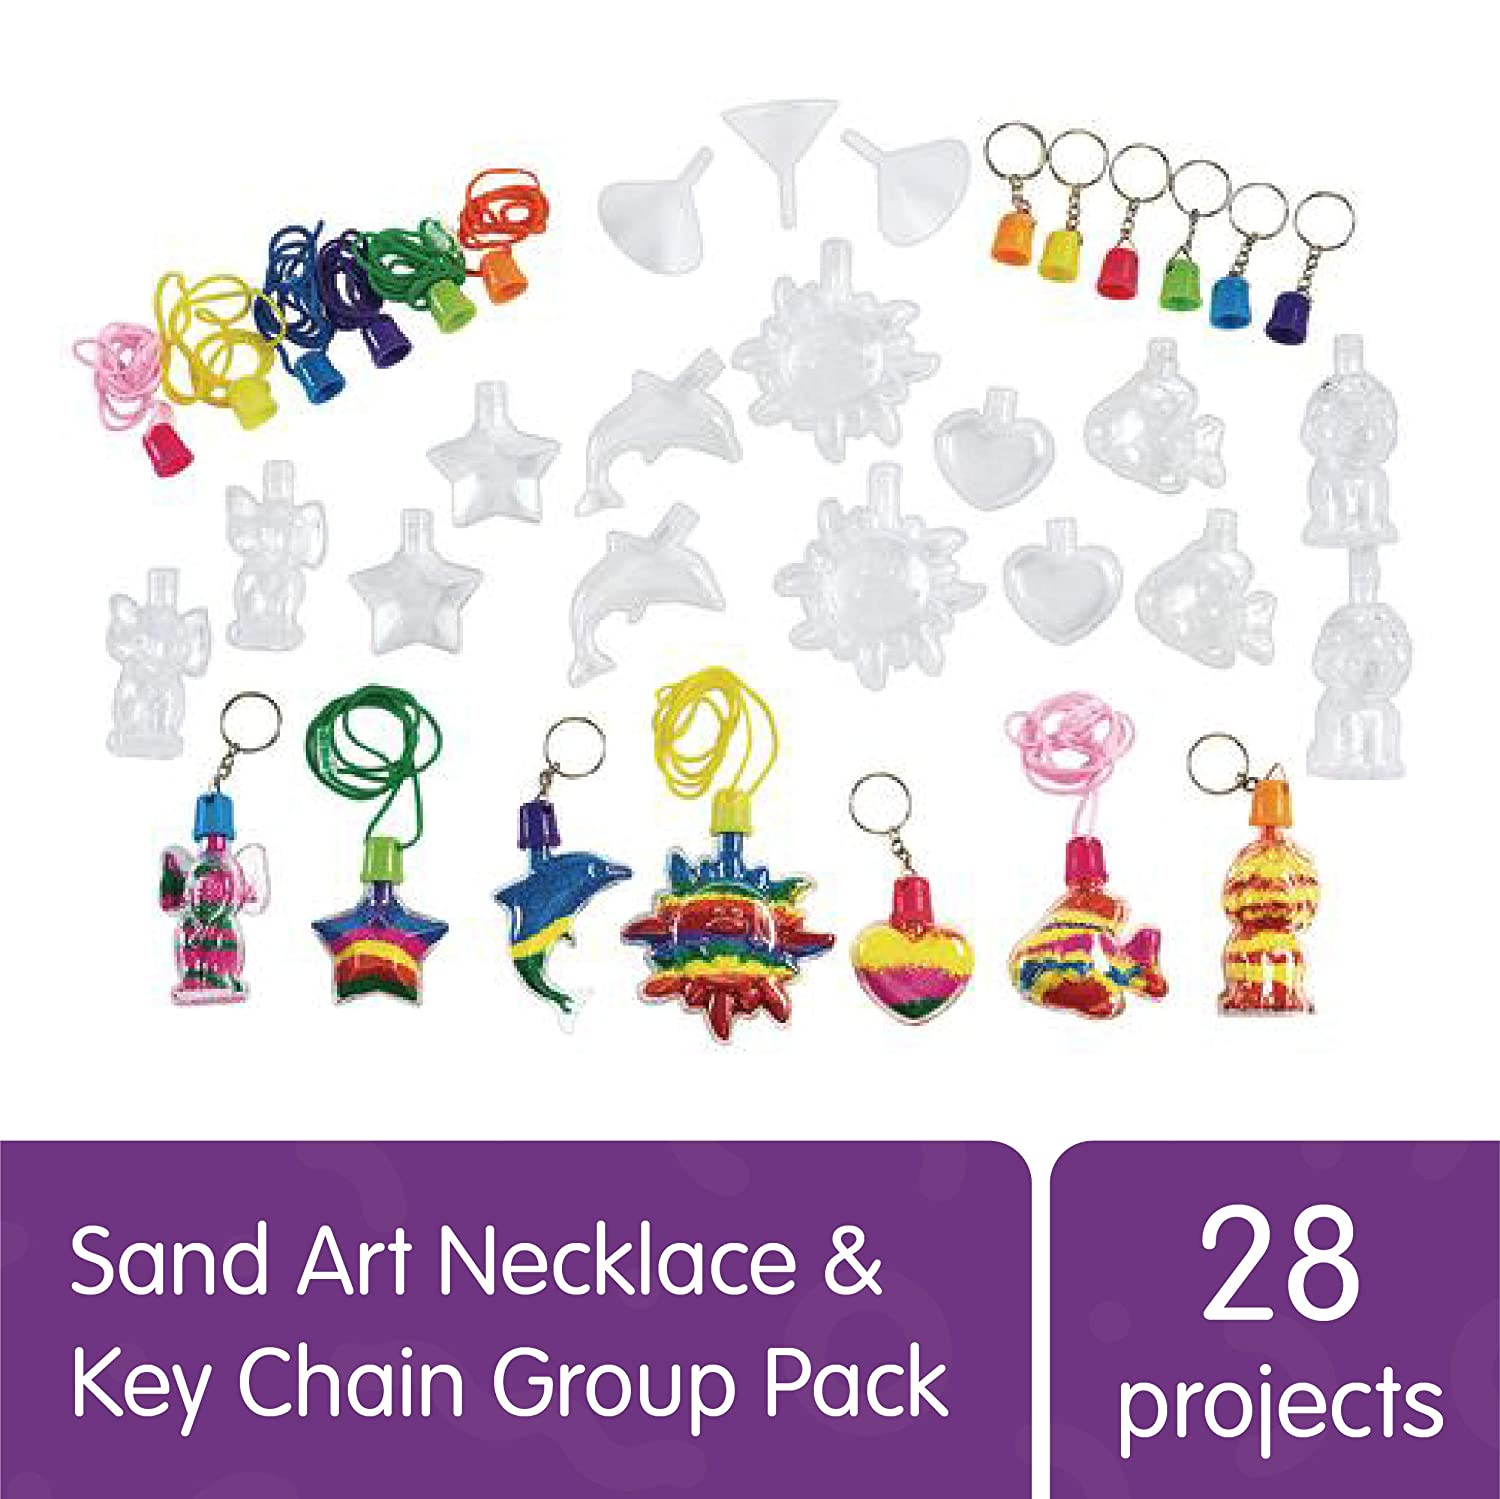 Colorations Sand Art Necklace & Key Chain Group Pack, 28 Projects, Gift, DIY, Arts & Crafts, for Kids, School, Home, Party Favors, Party Activity, VBS